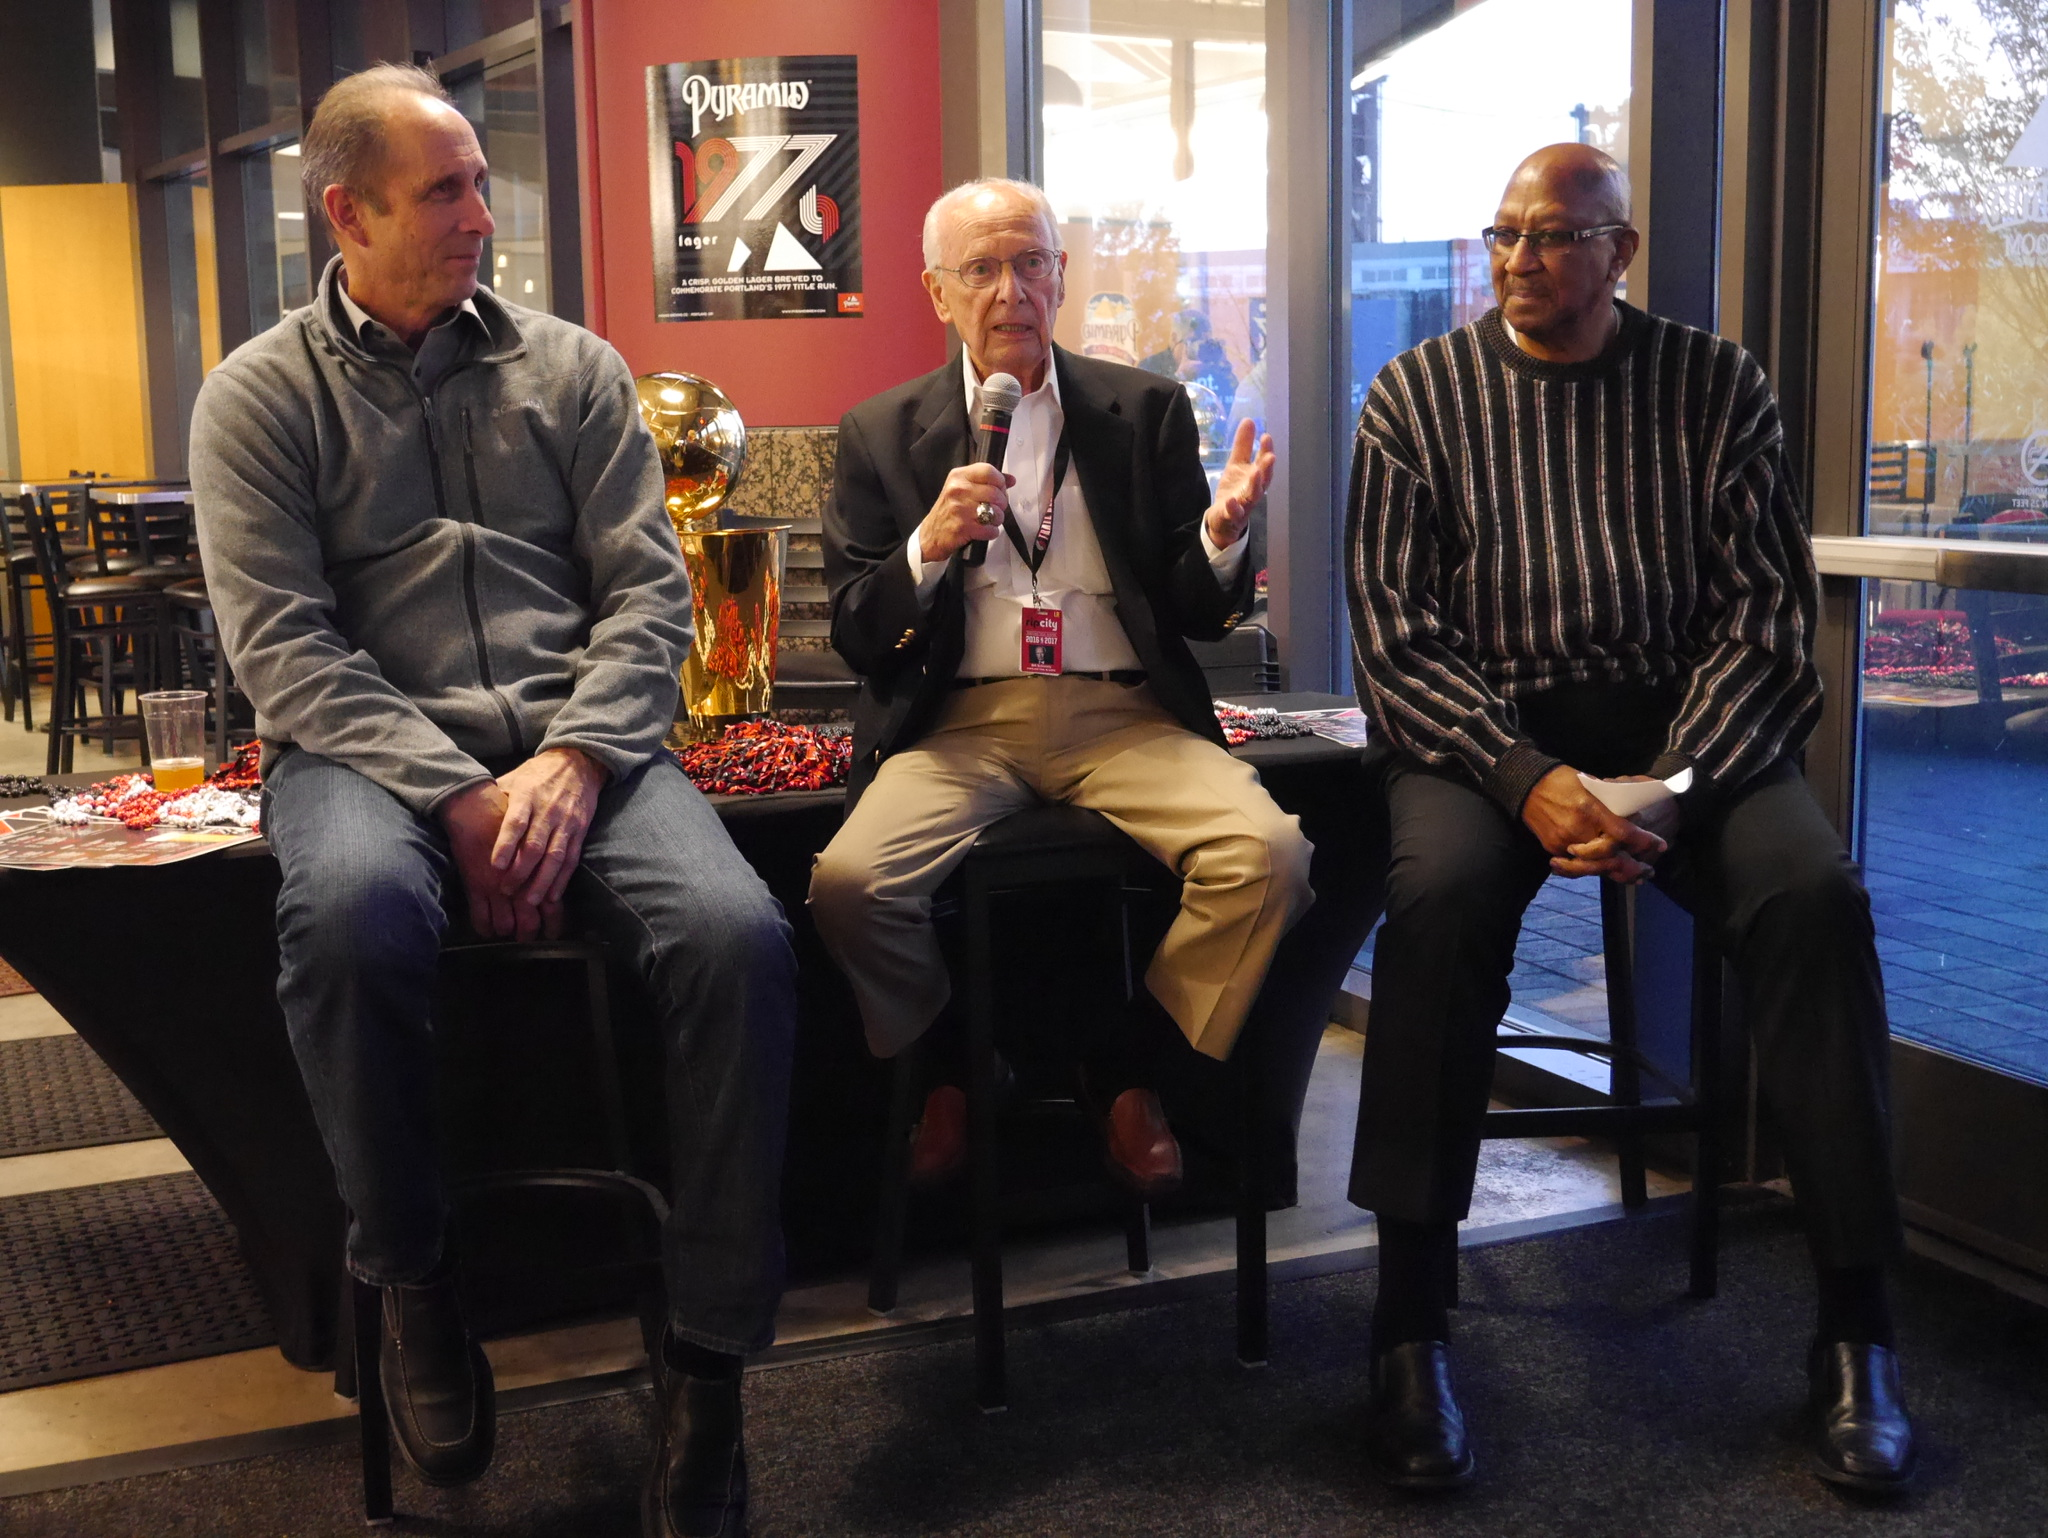 Bob Gross, Bill Schonely, and Lloyd Neal discussing the 1977 Portland Trail Blazers during an launch event for Pyramid Brewing 1977 Lager. (photo by Cat Stelzer)